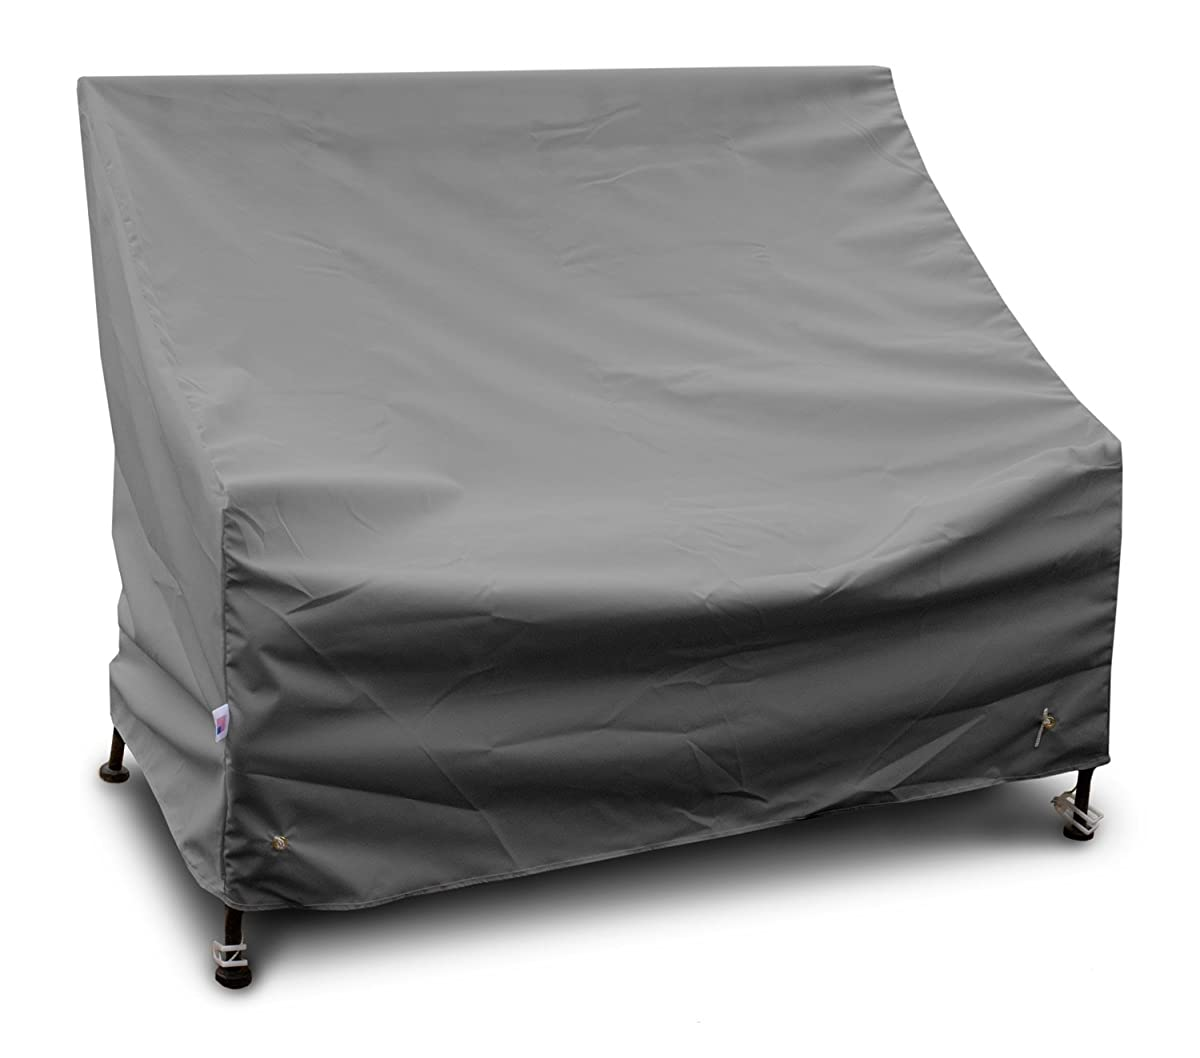 KoverRoos Weathermax 82450 3-Seat Glider/Lounge Cover, 78-Inch Width by 38-Inch Diameter by 30-Inch Height, Charcoal